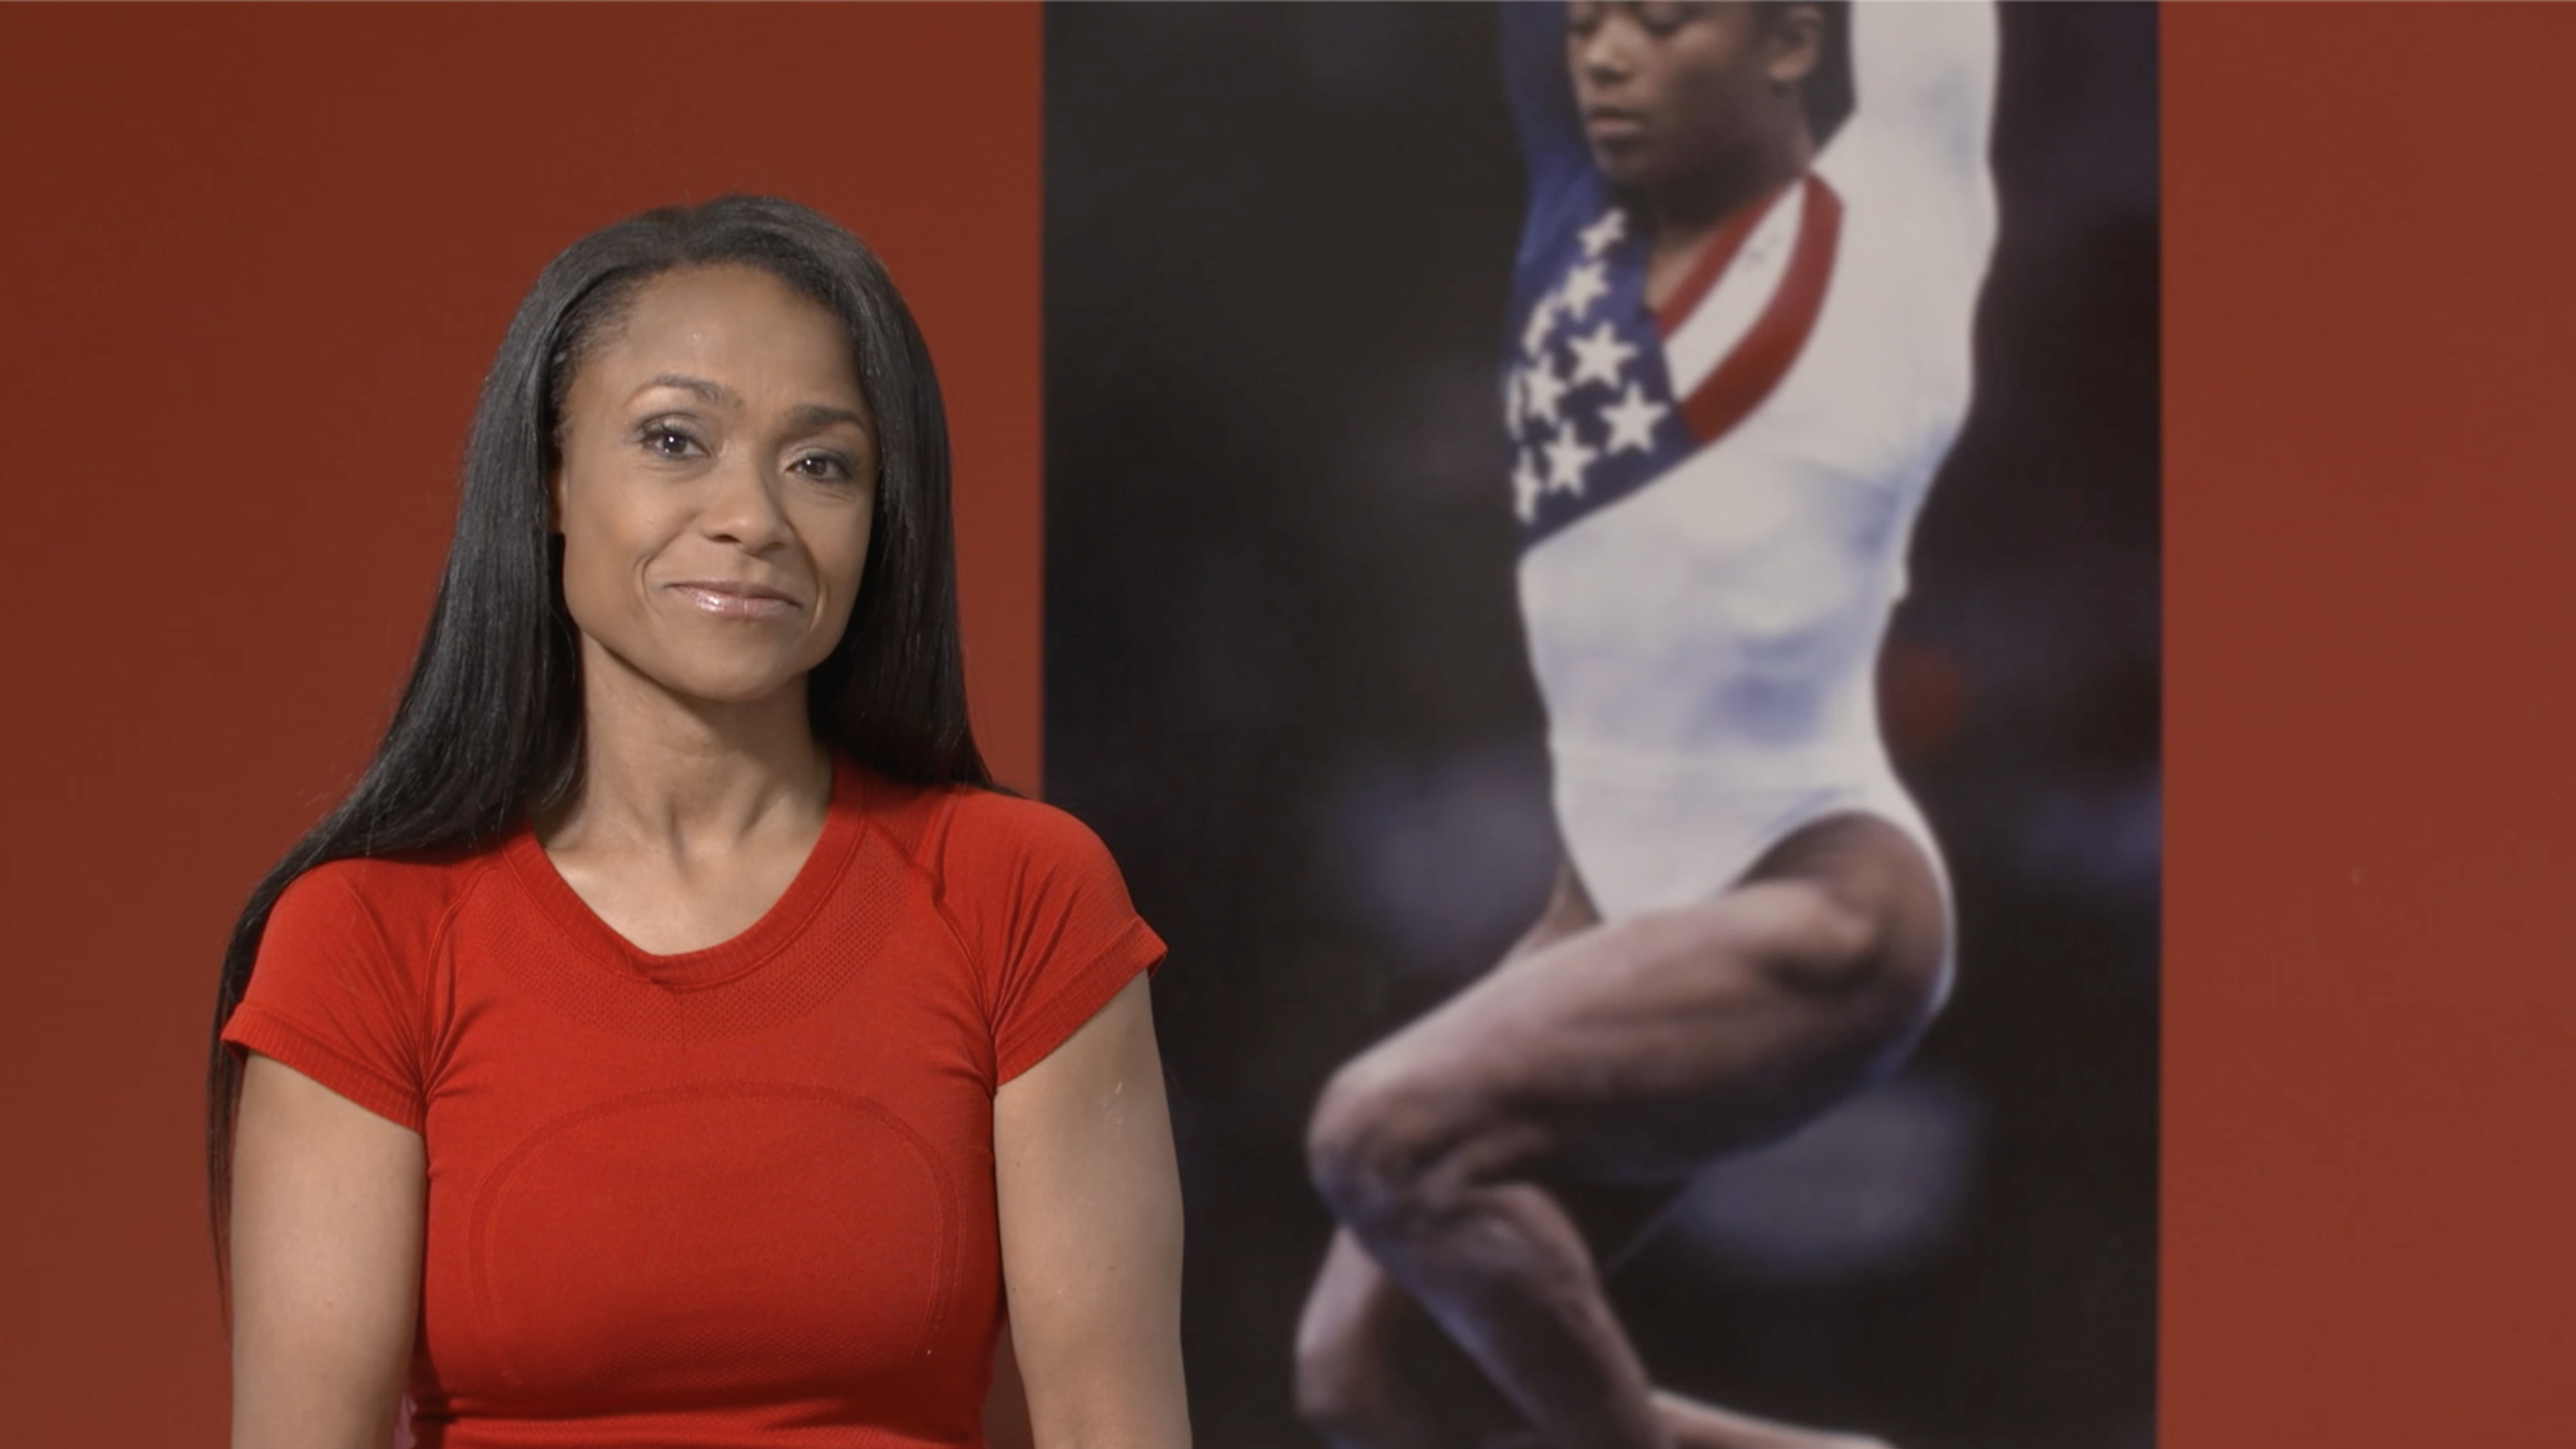 VIDEO: Former Olympic Gymnast Dominique Dawes Says Simone Biles Should 'Be Able To Say No'